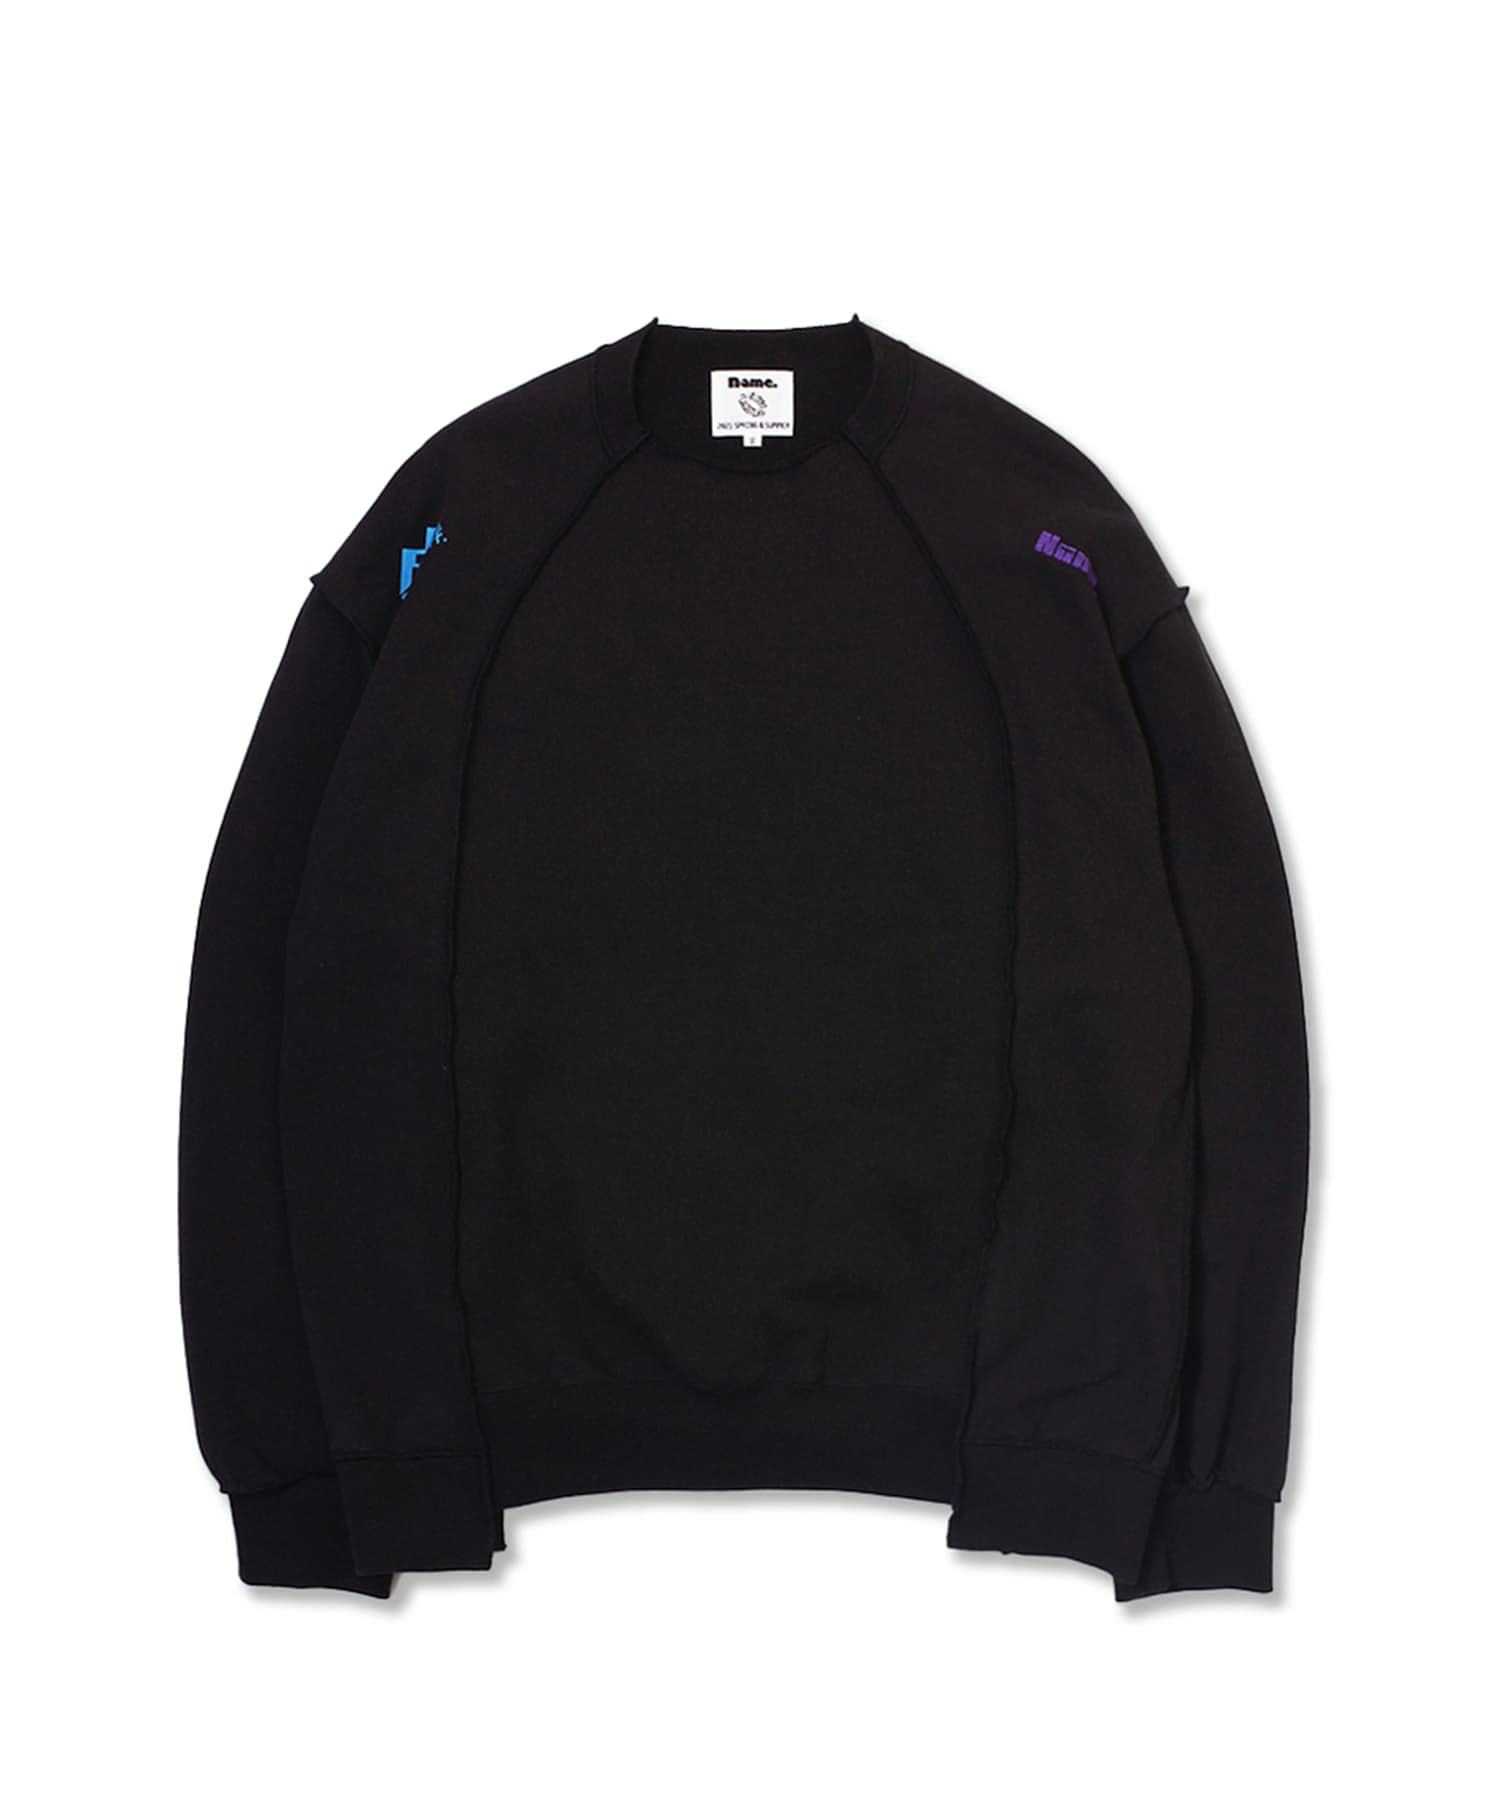 F-LAGSTUFF×Name. CREW NECK SWEATER Name.